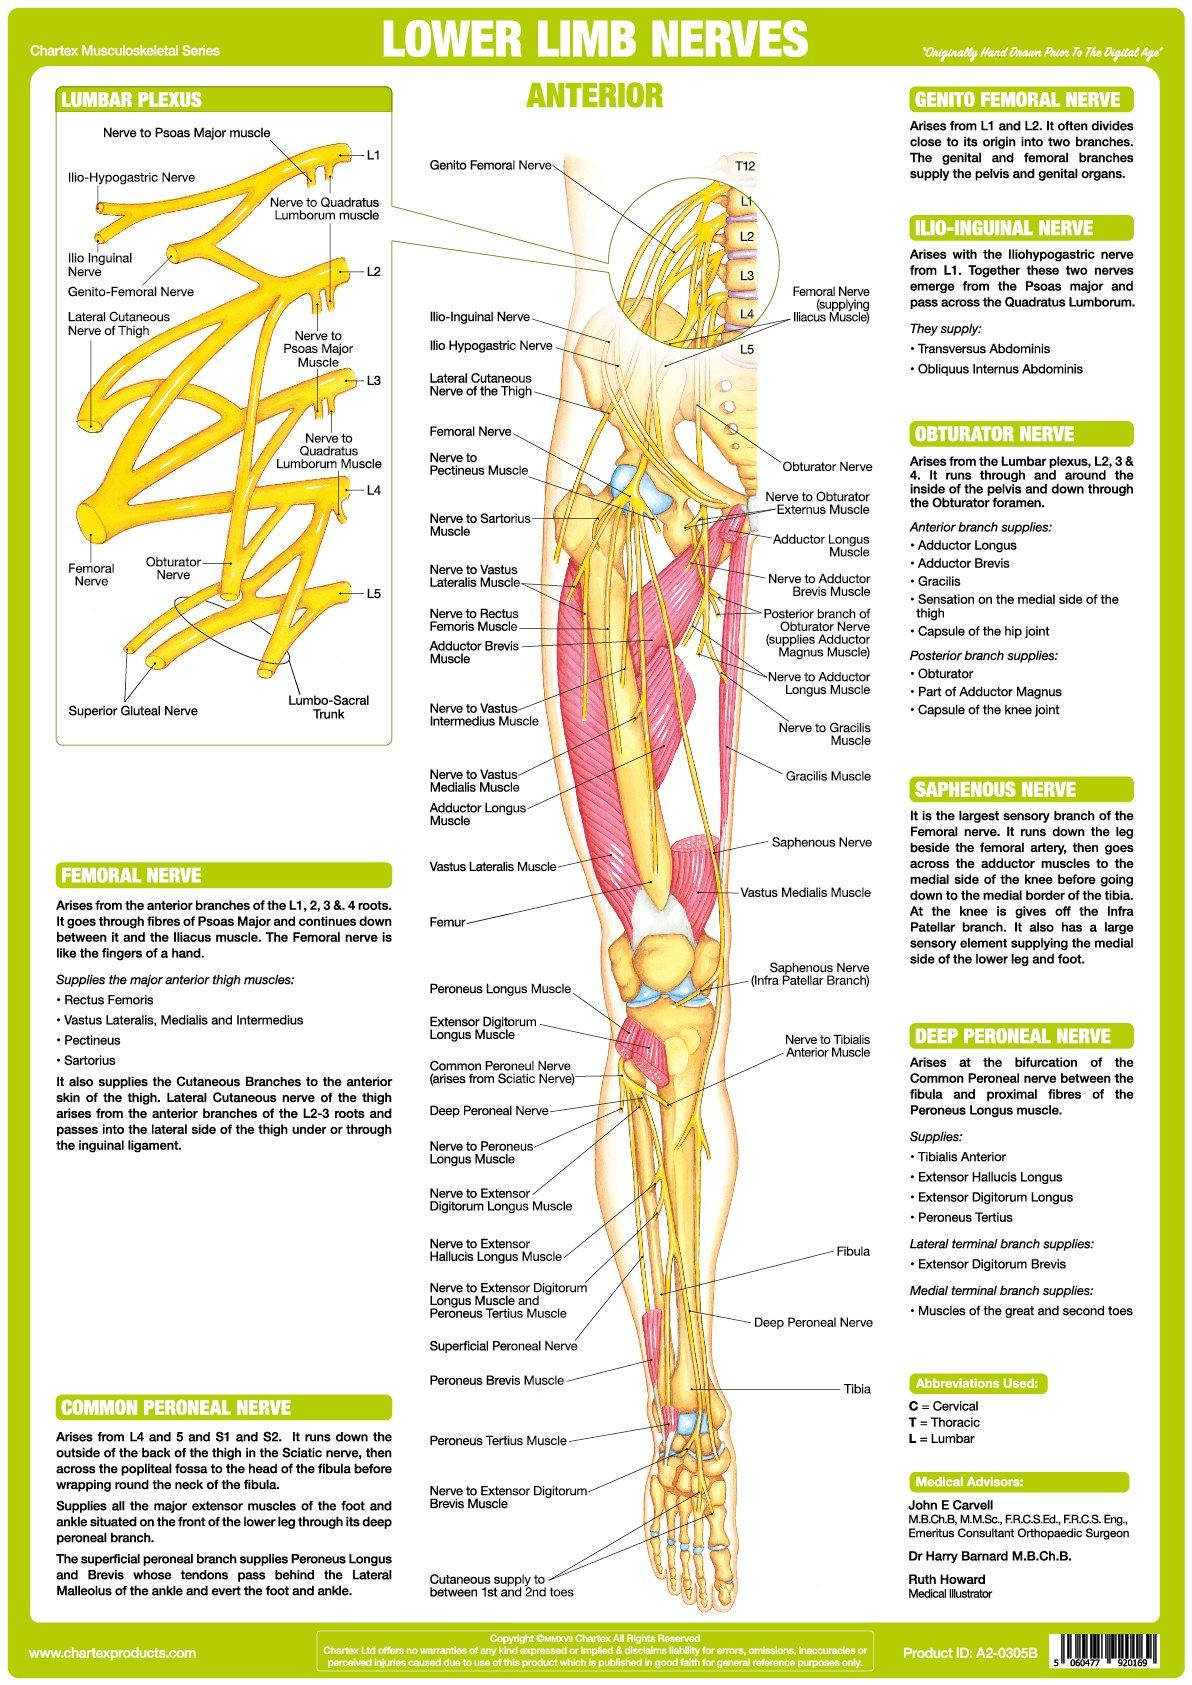 Nerve Anatomy Chart - Lower Limb Anterior